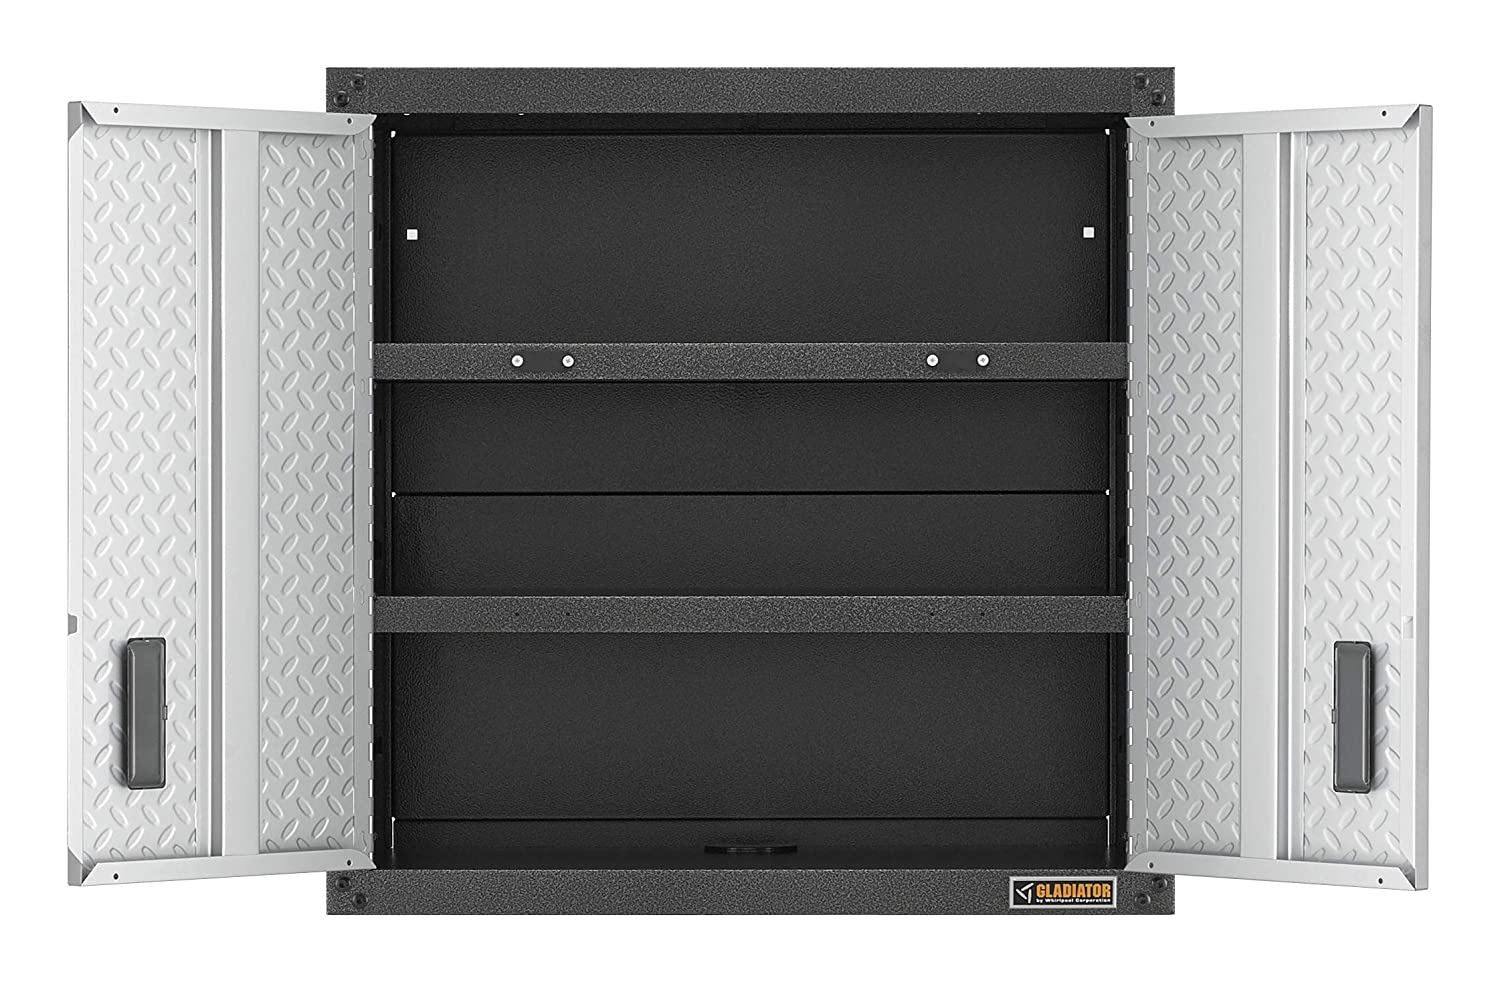 Amazon.com: Gladiator GAWG28FDYG Full-Door Wall GearBox Steel Cabinet:  WHIRLPOOL: Home Improvement